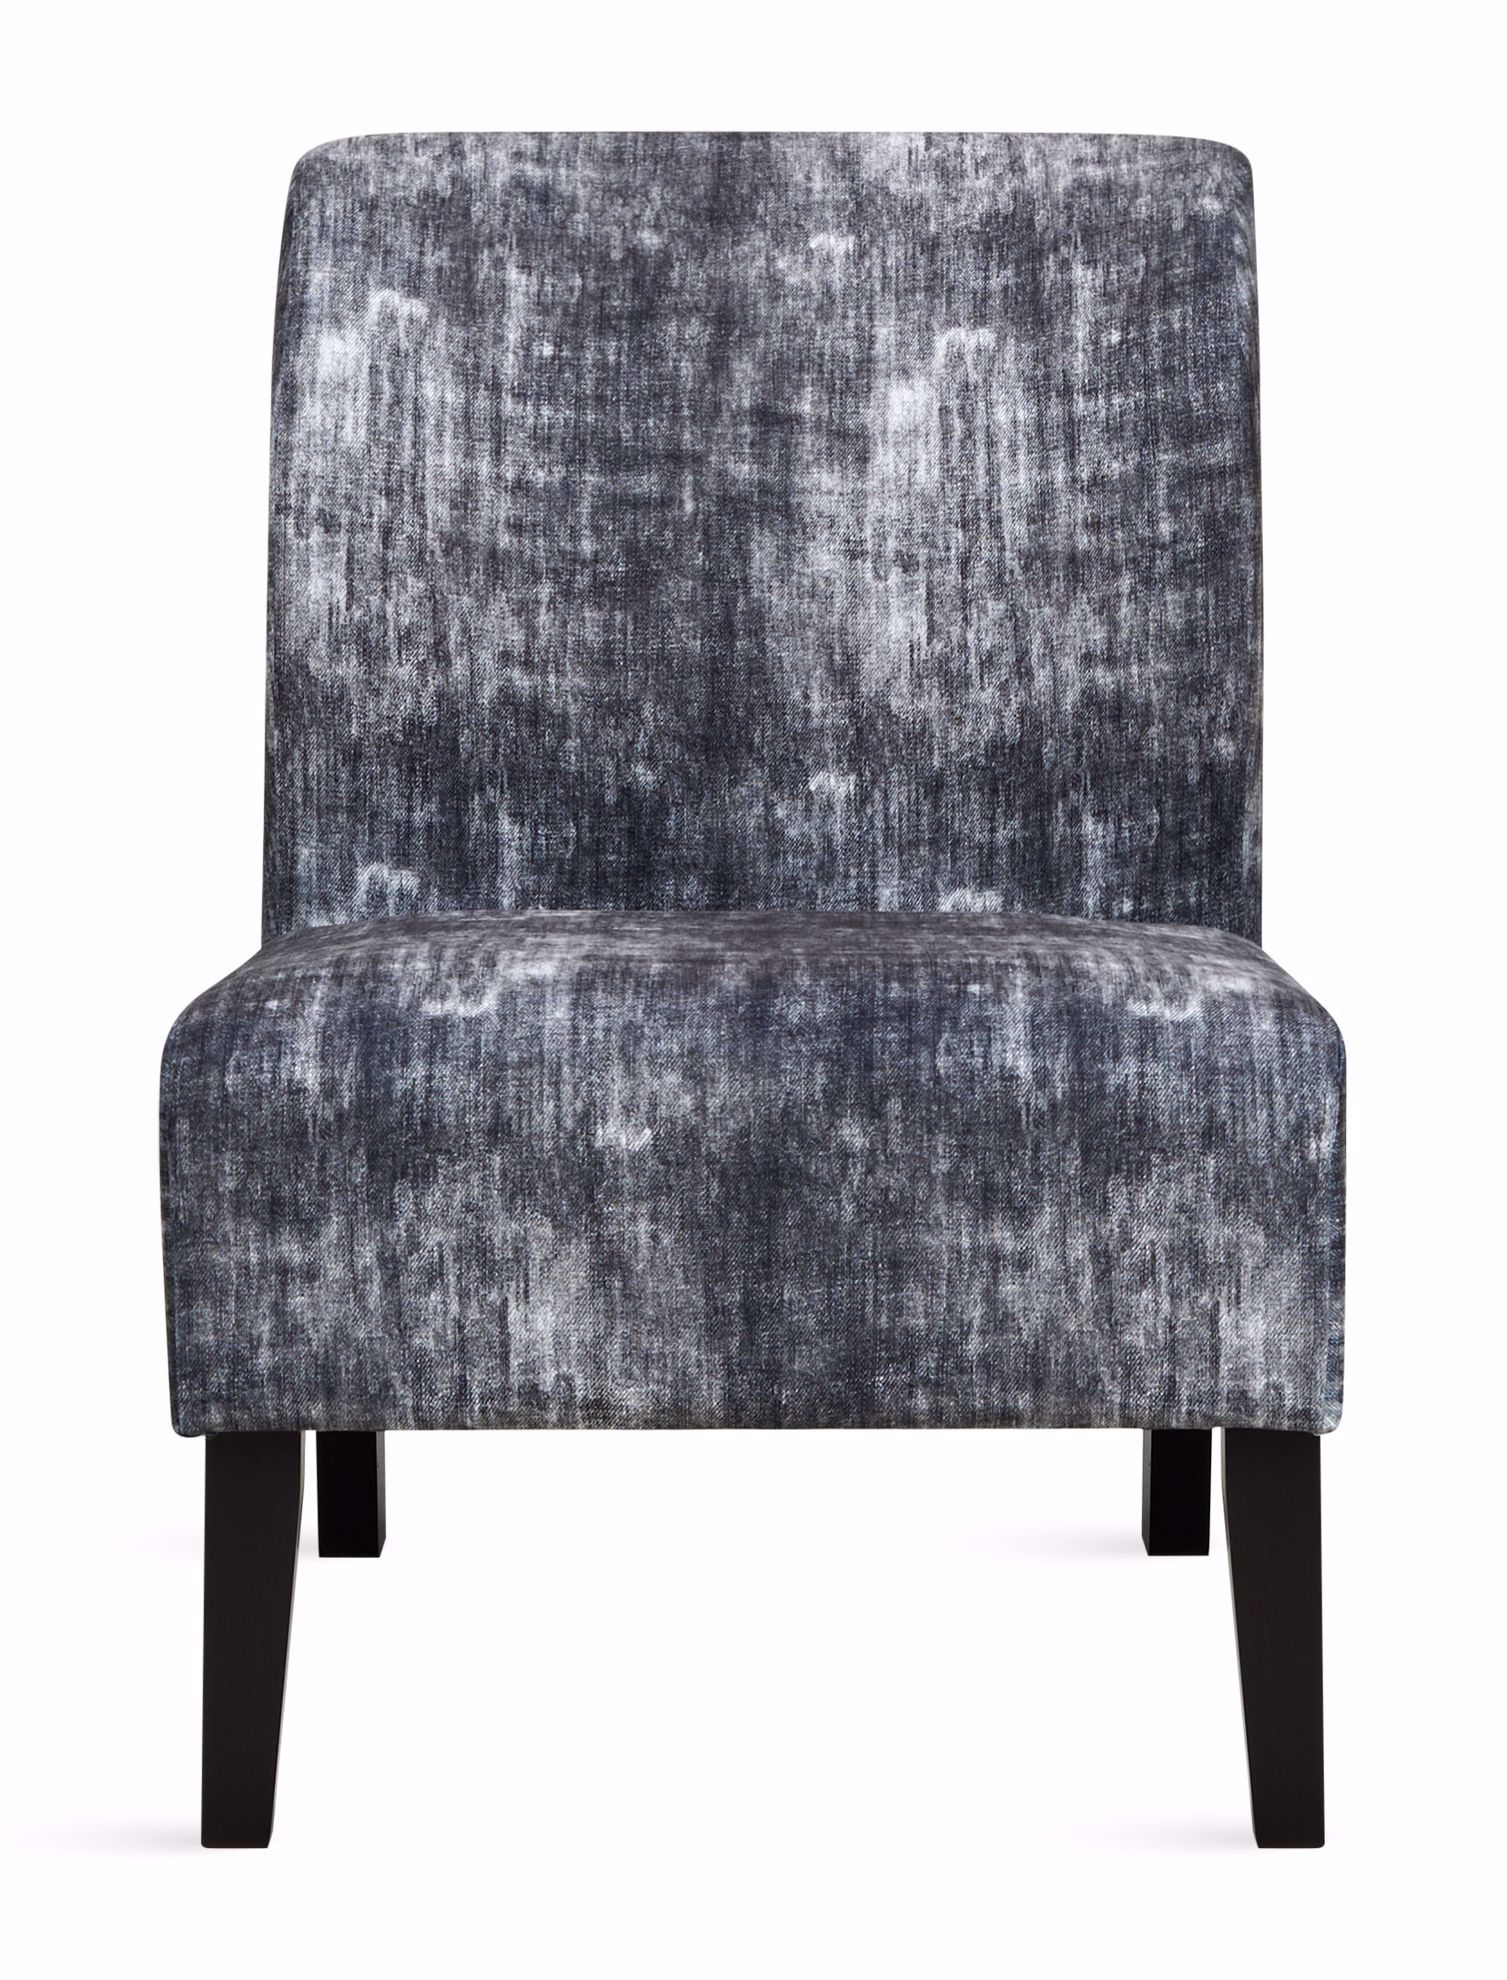 Picture of Triptis Charcoal Accent Chair